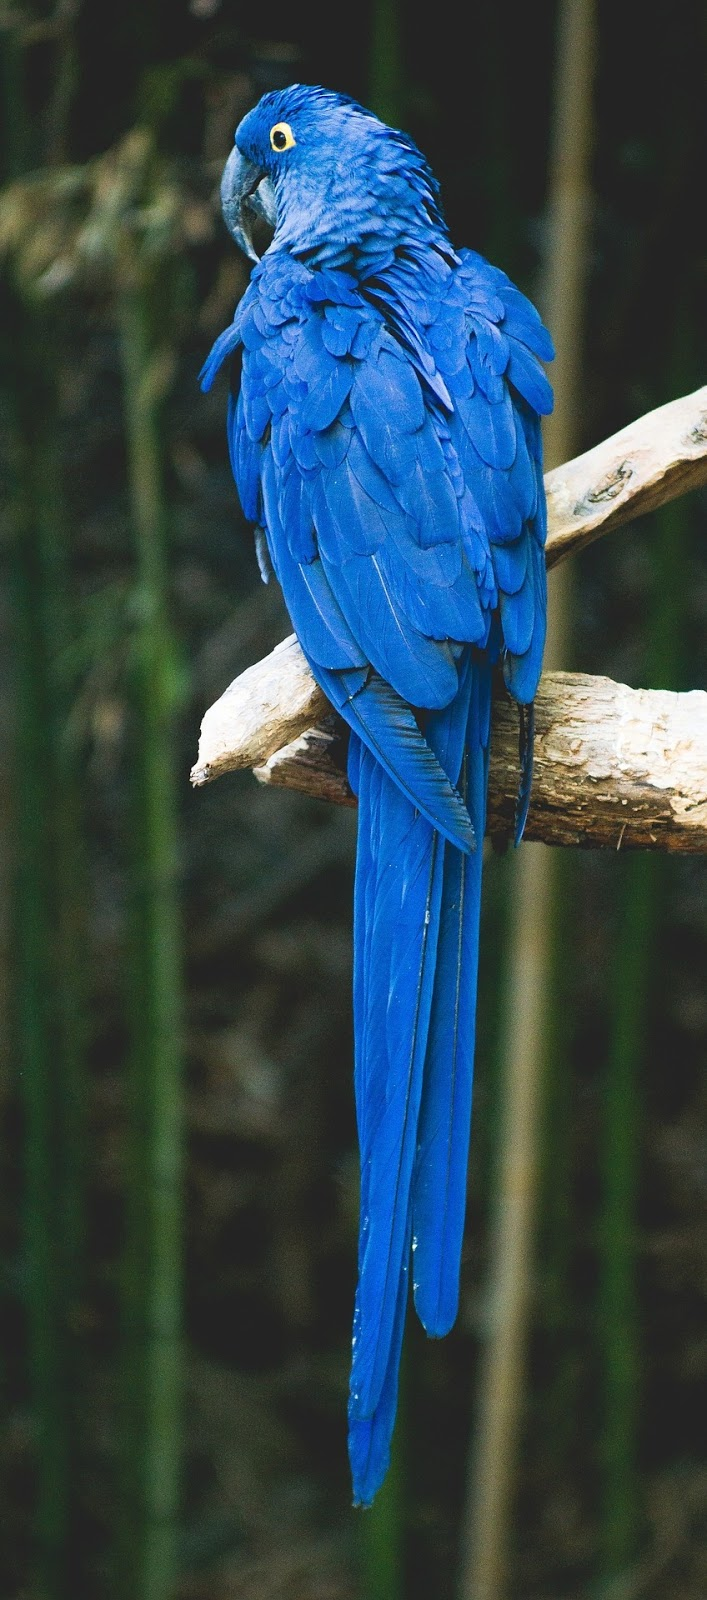 Picture of a blue parrot.